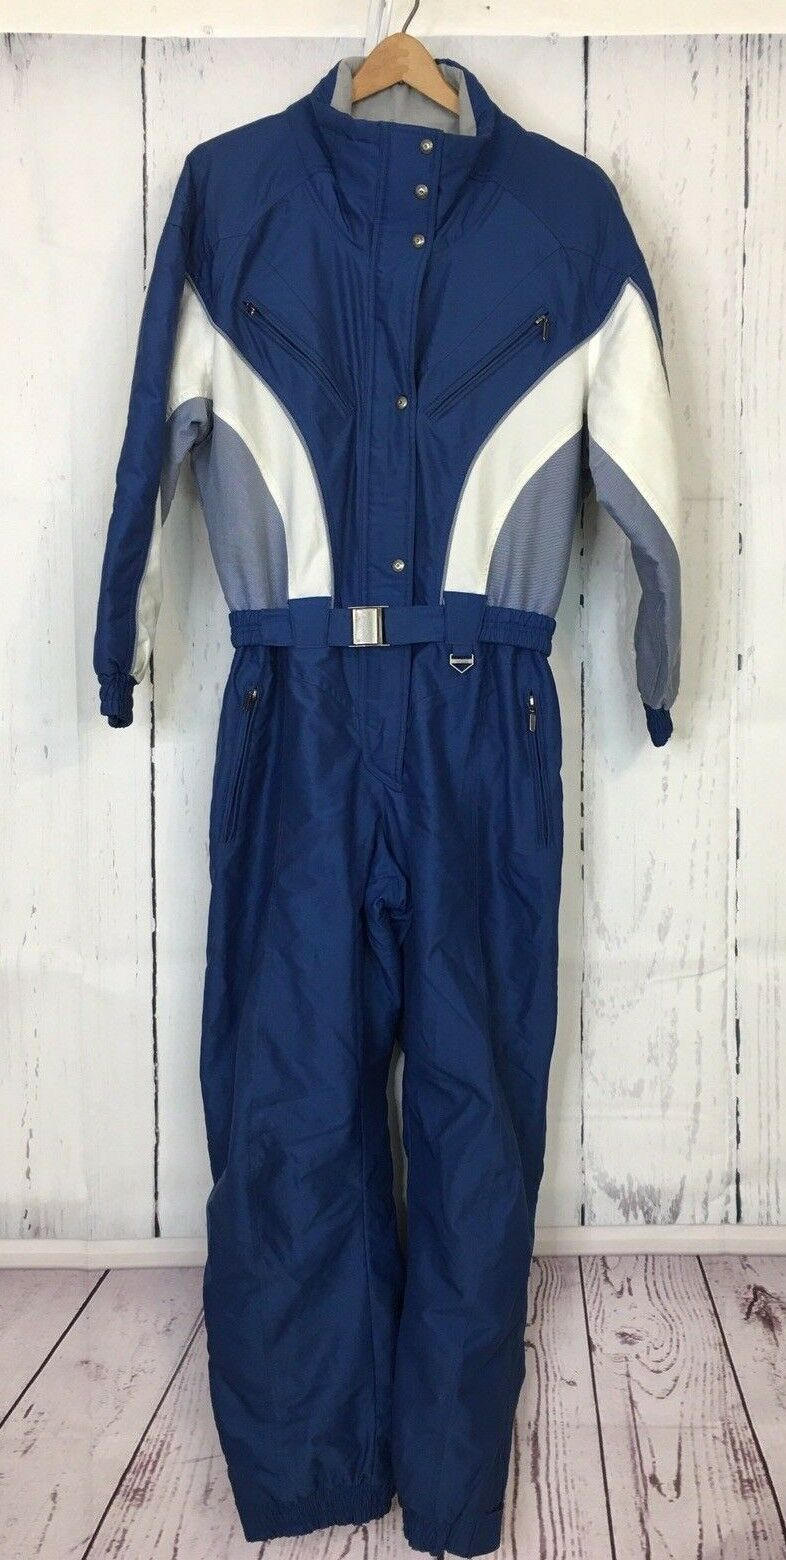 Inside Edge Insulated Snowmobile Jump Suit Grünical Blau Weiß damen medium